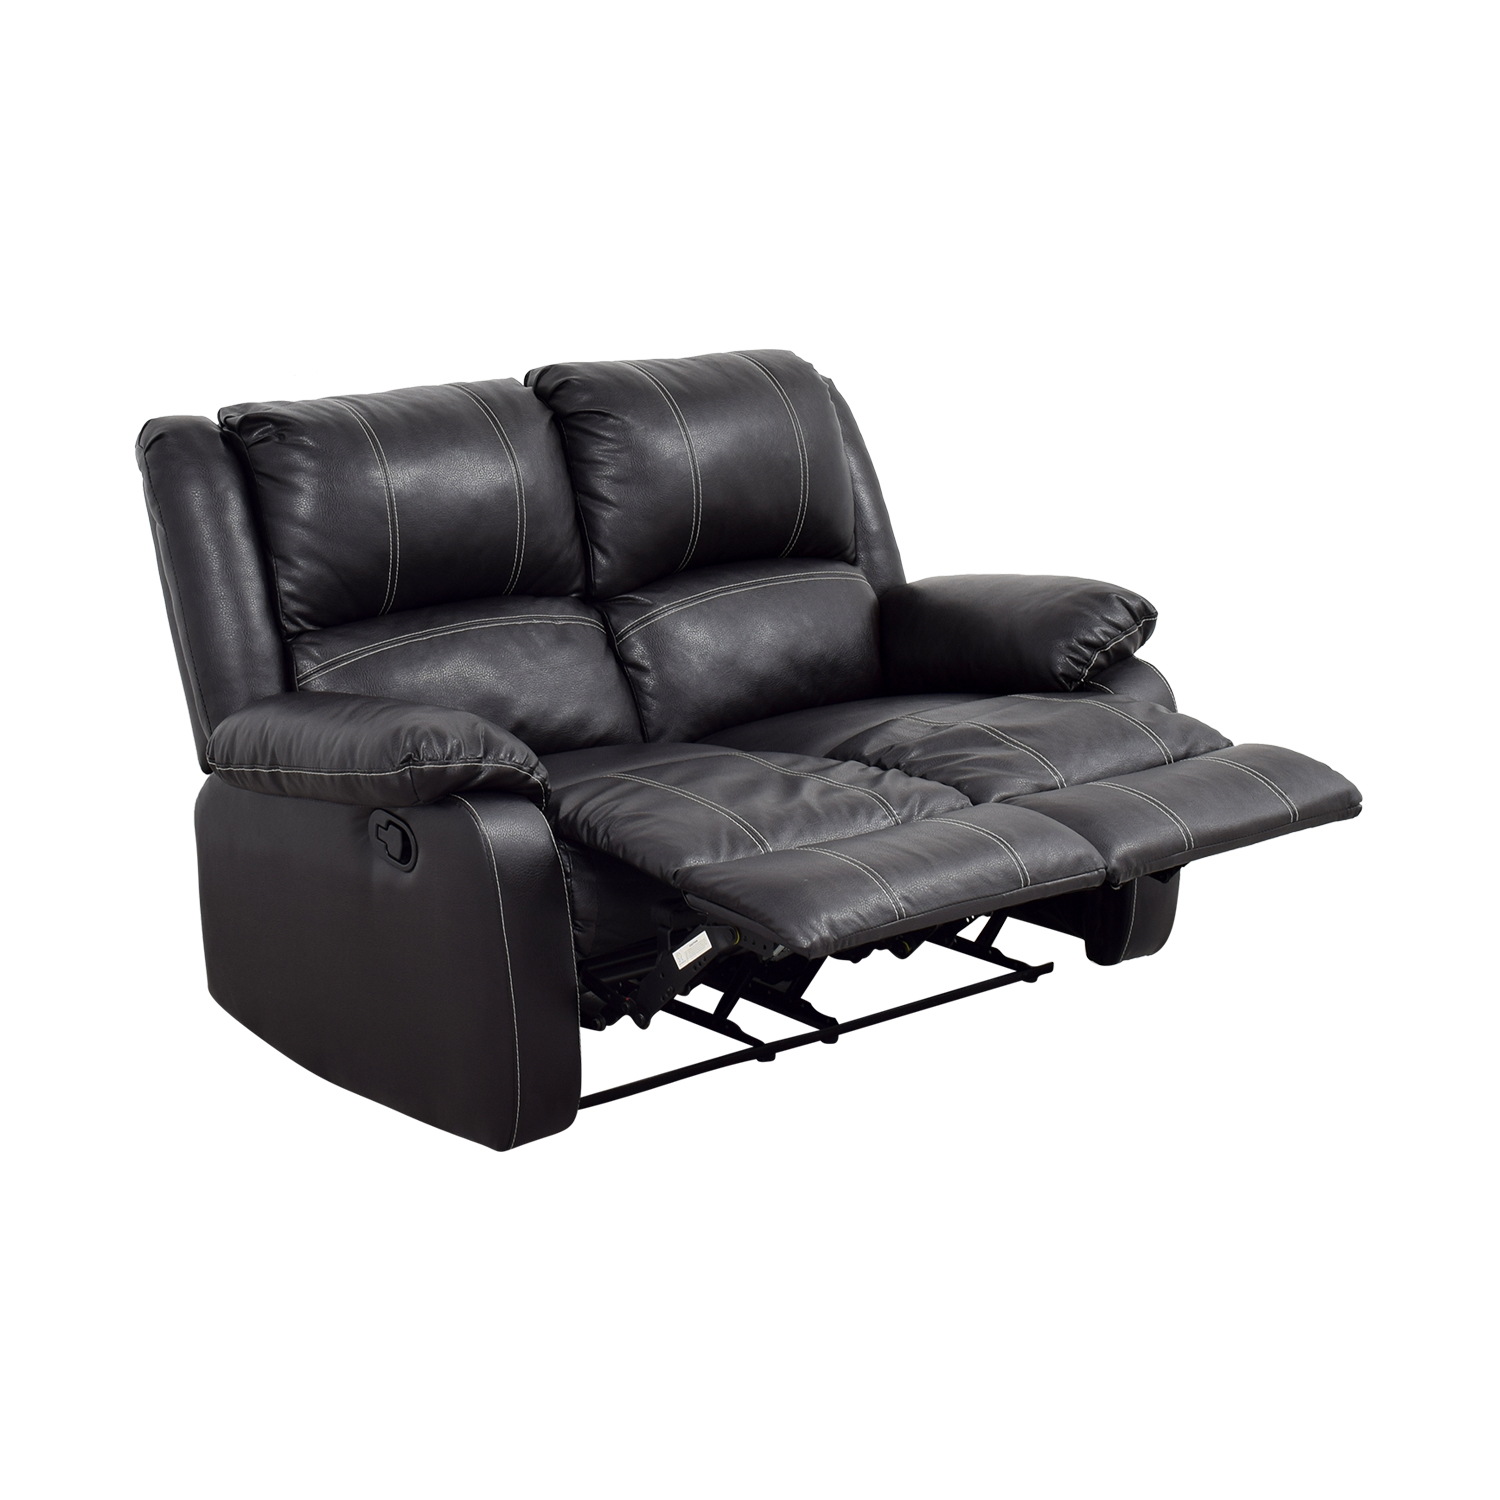 Acme Acme Black Leather Reclining Loveseat Dark Espresso